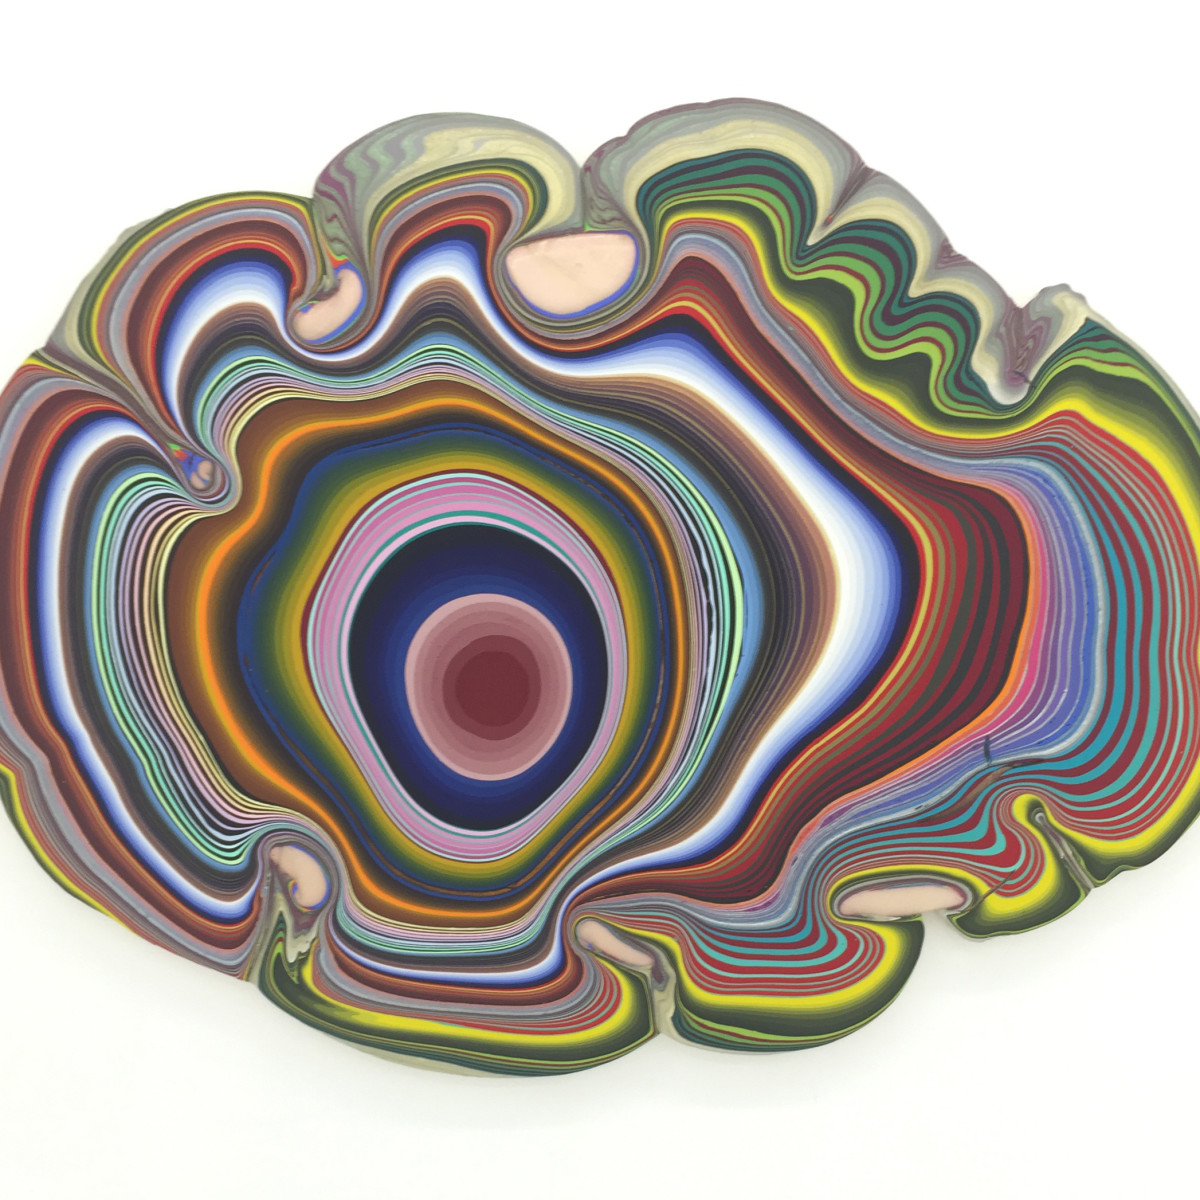 Texas Contemporary 2015 Holton Rower, 12ae4d